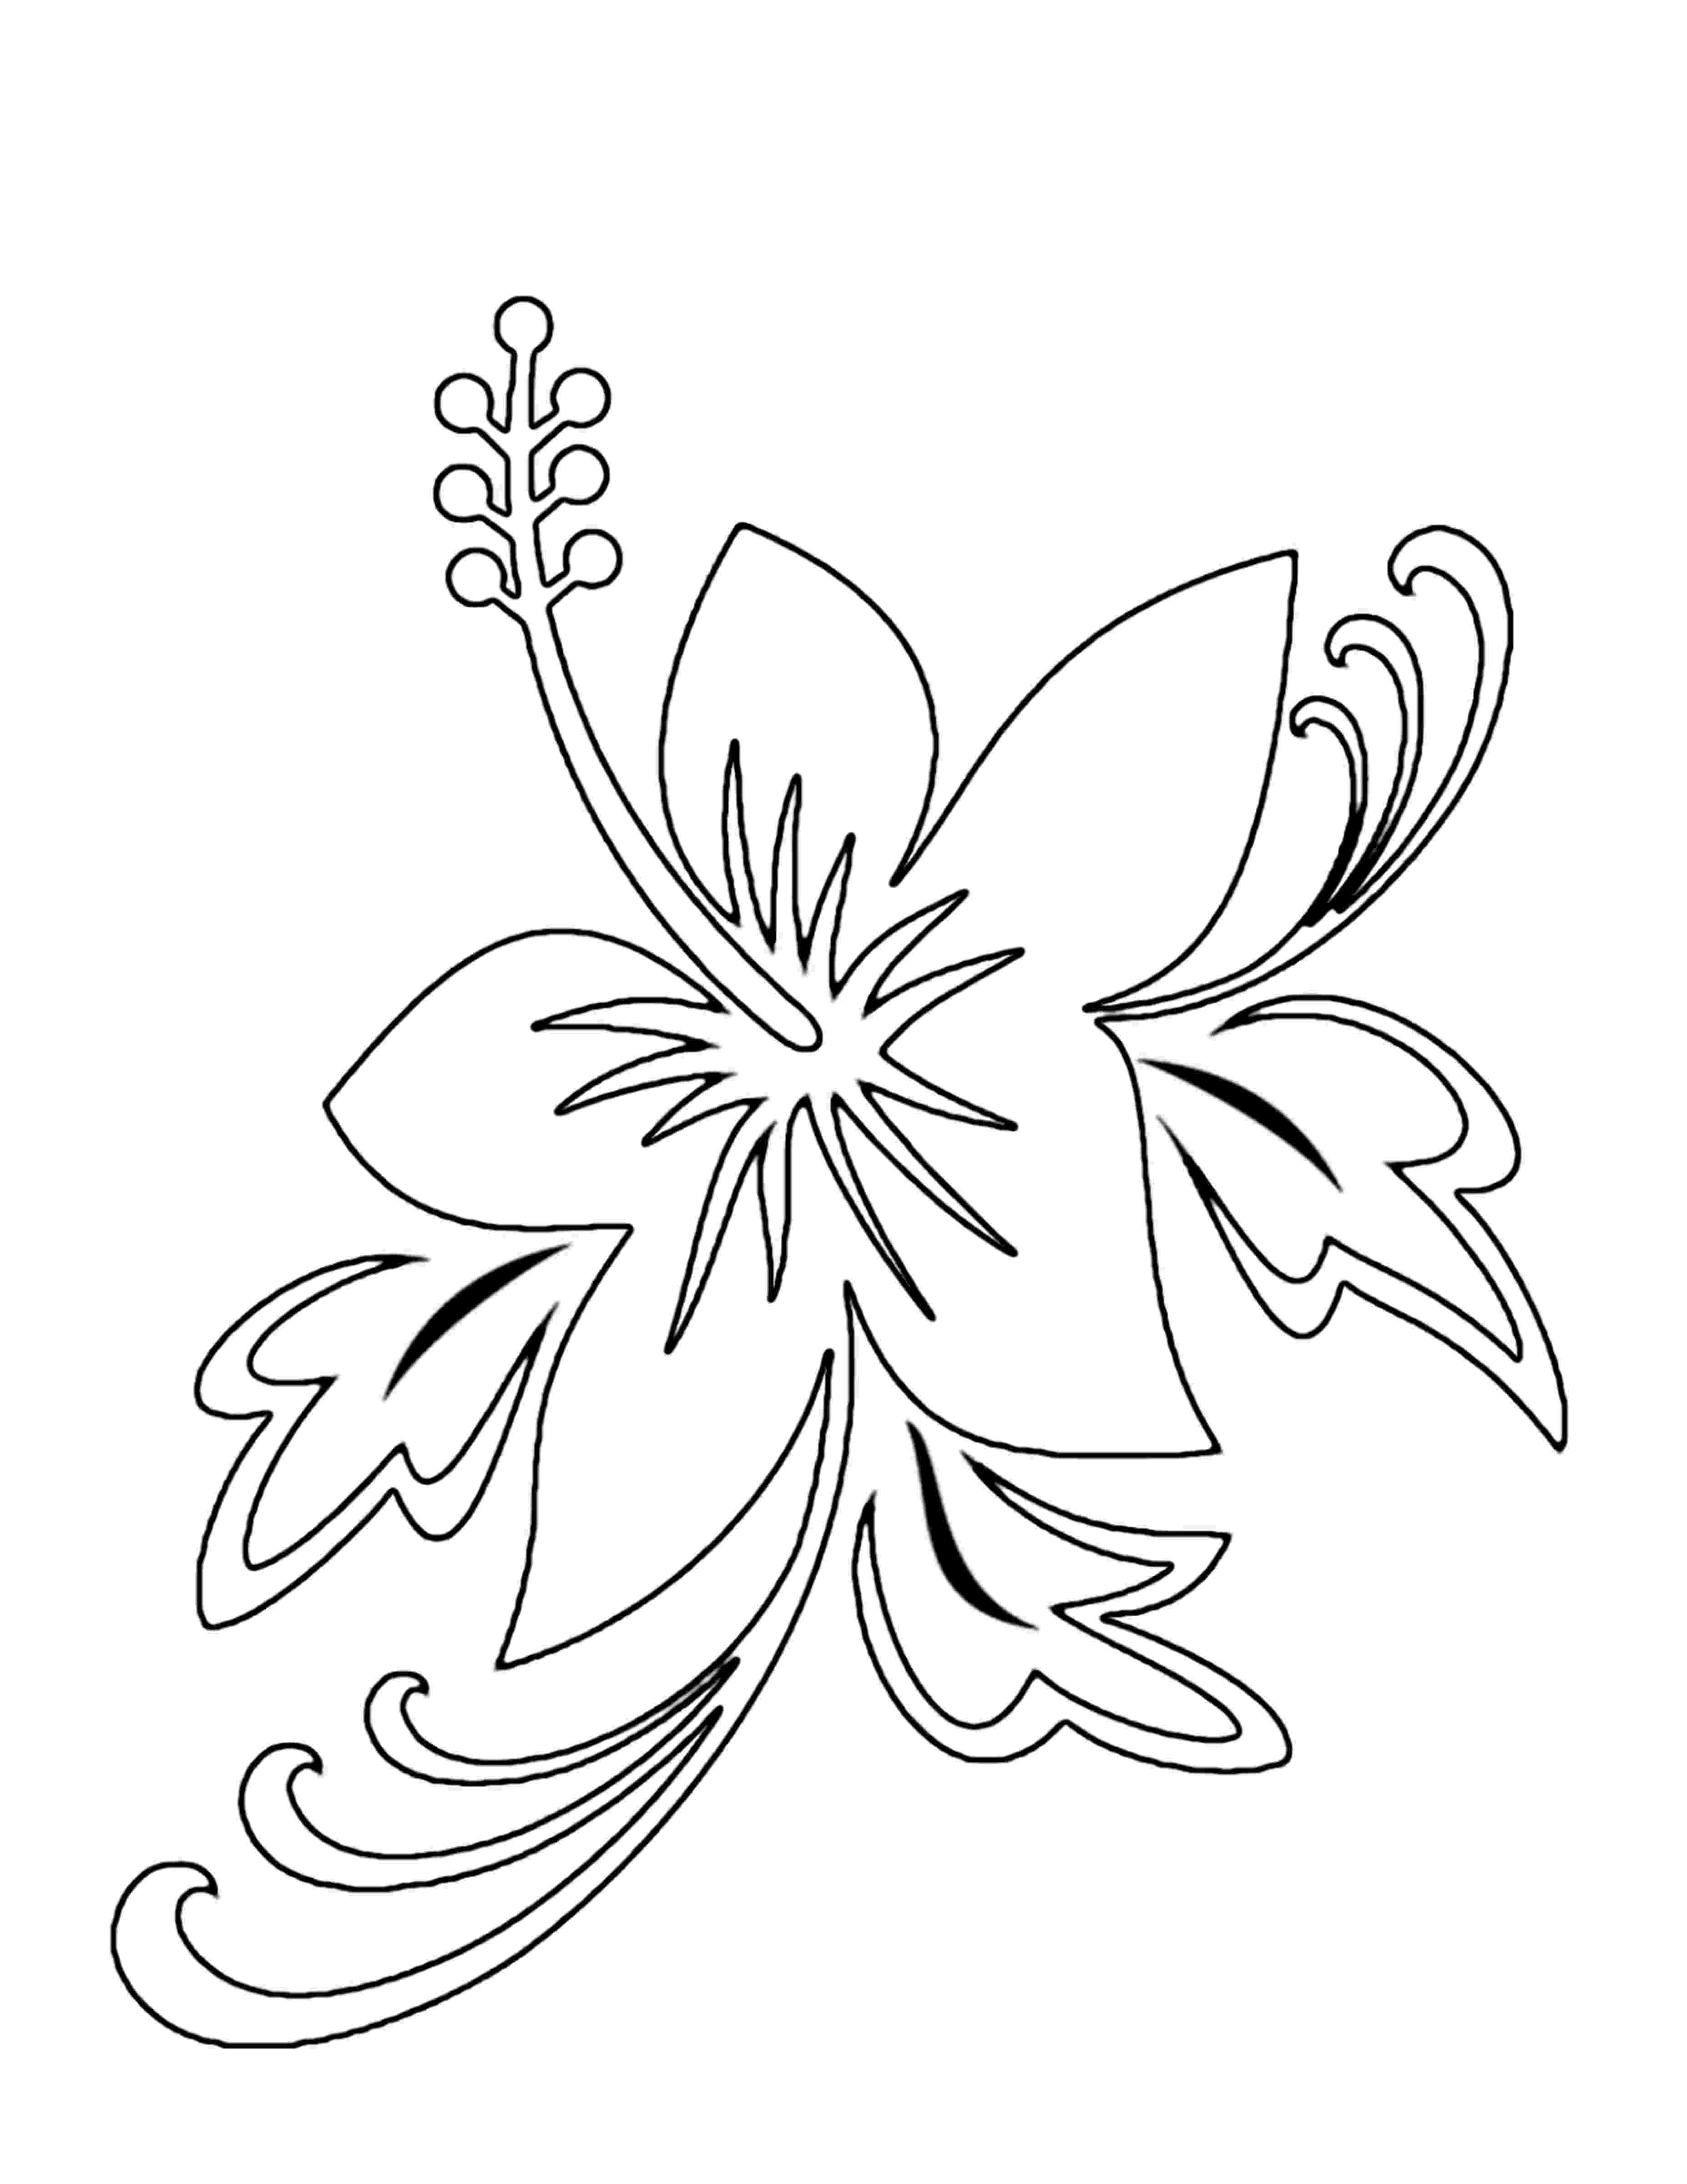 flower colouring pages to print detailed flower coloring pages to download and print for free pages flower to colouring print